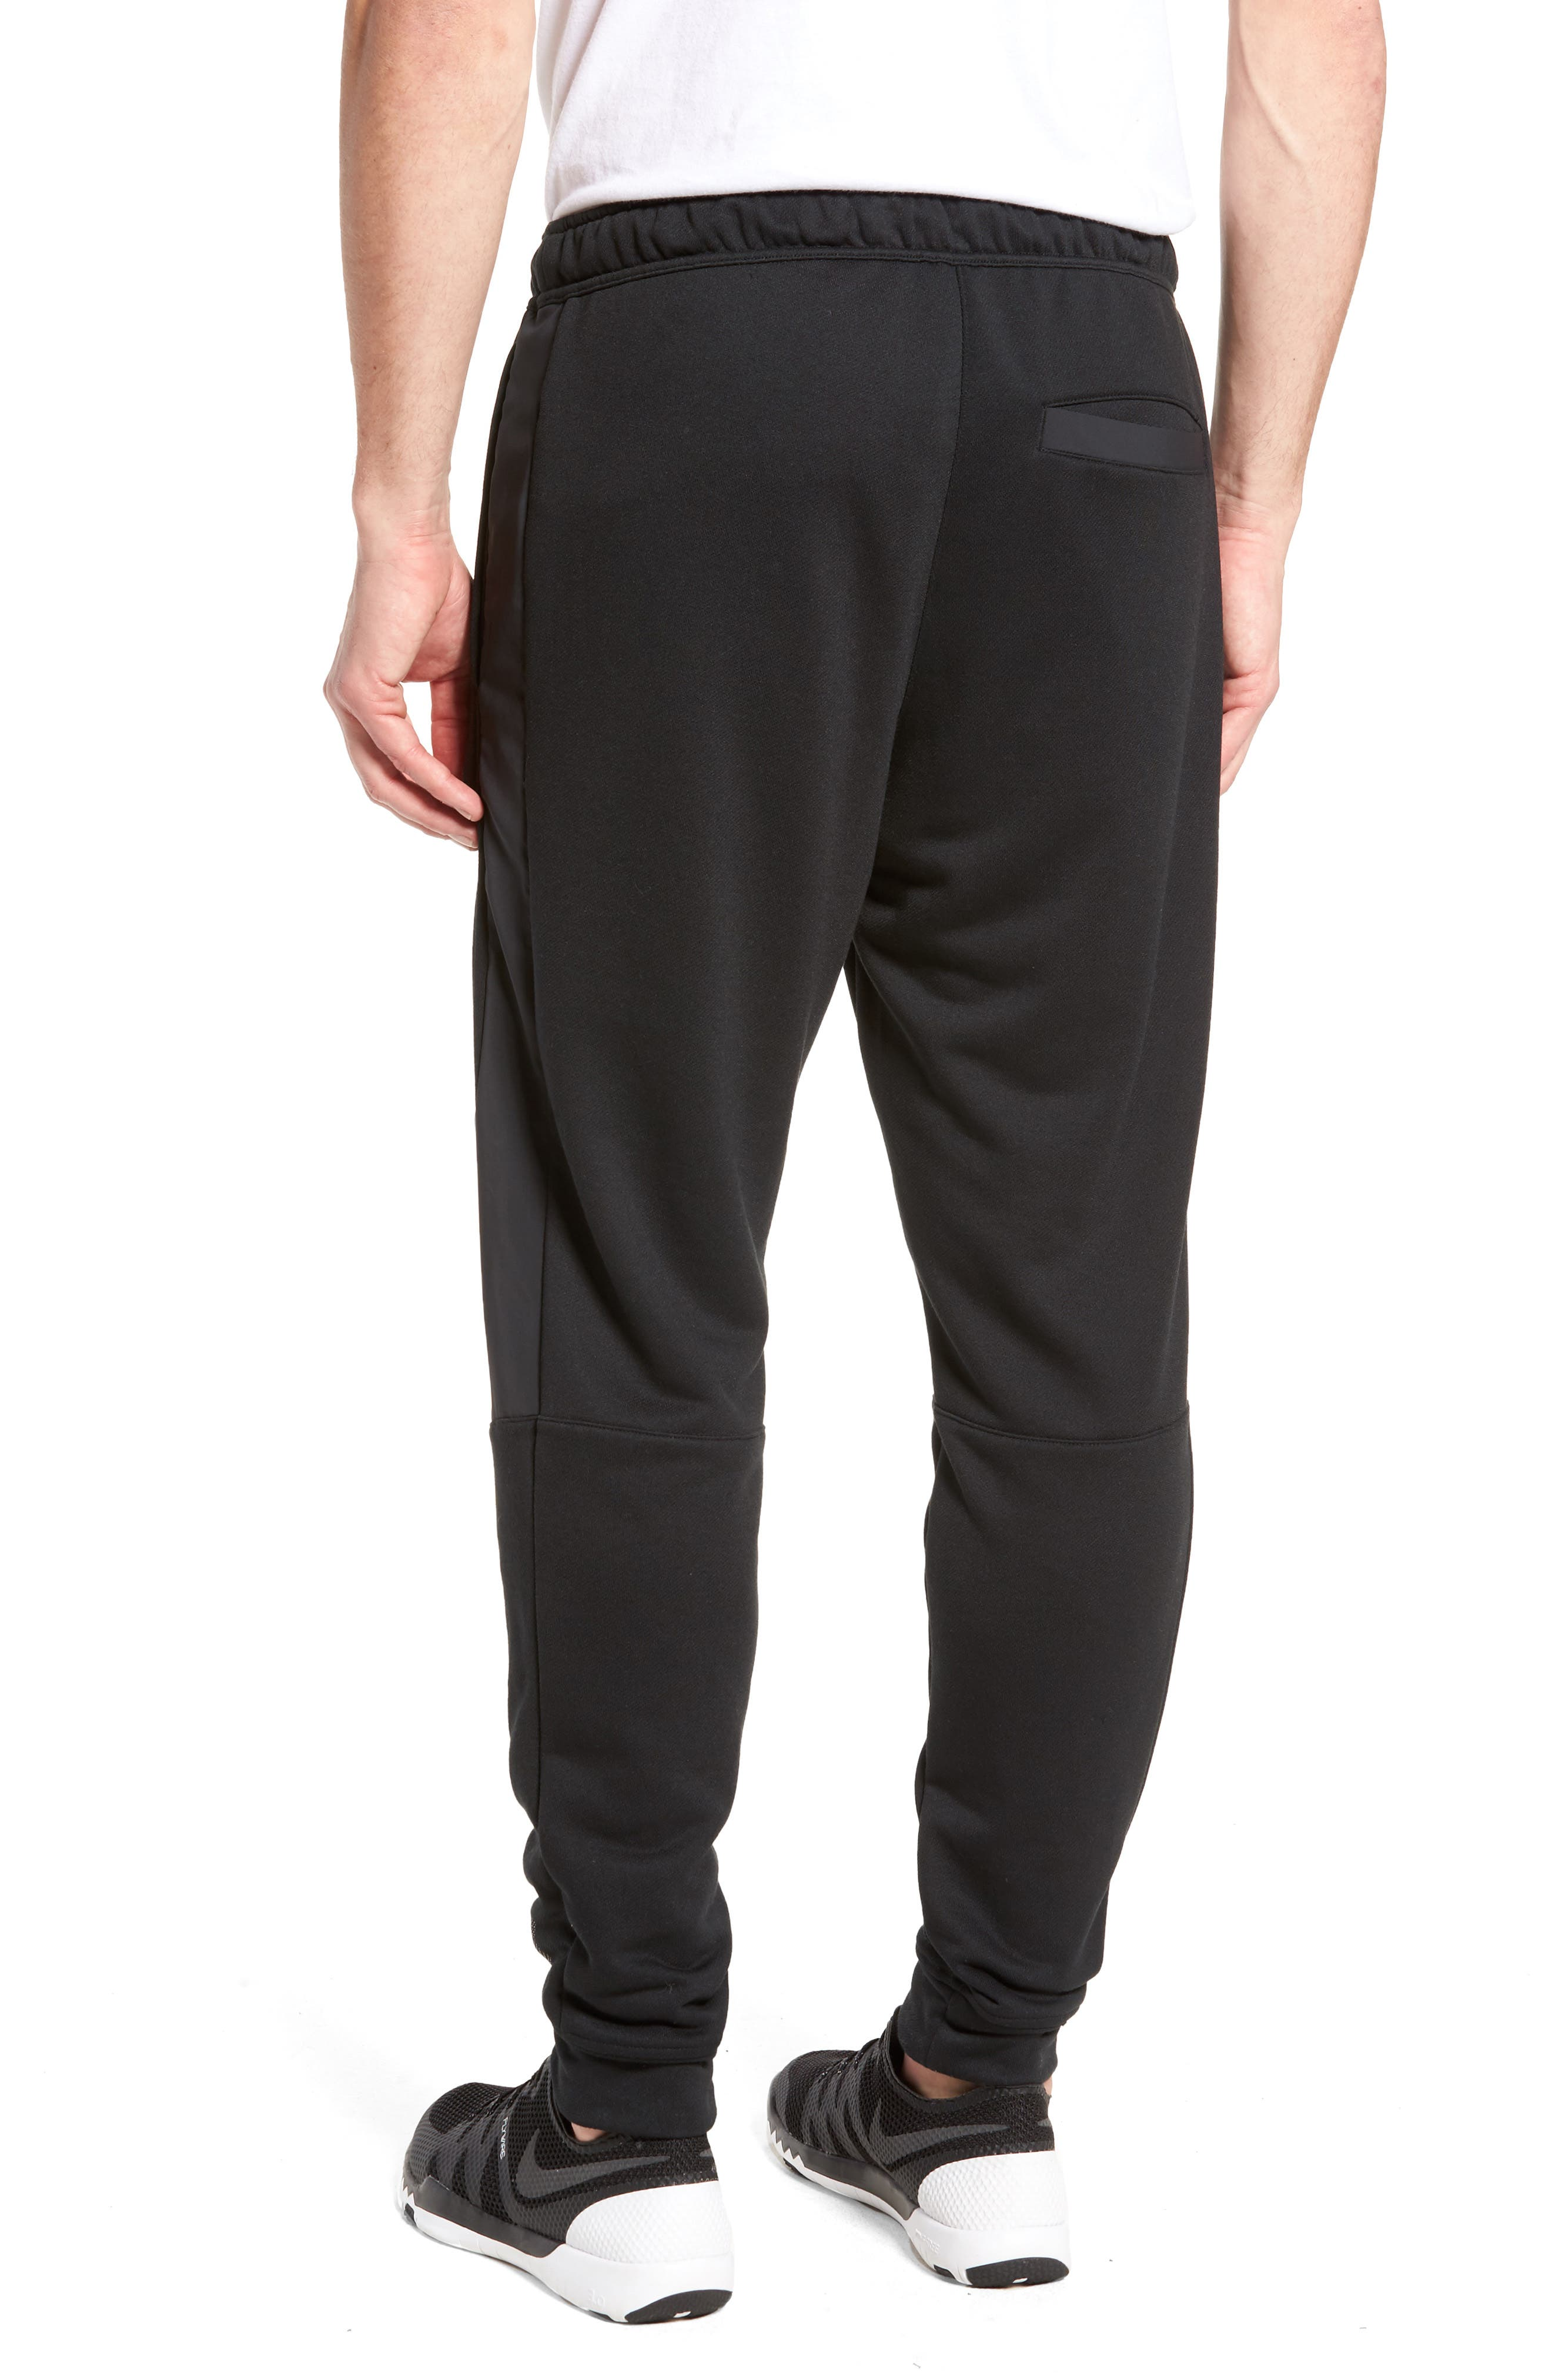 Training Project X Jogger Pants,                             Alternate thumbnail 2, color,                             010